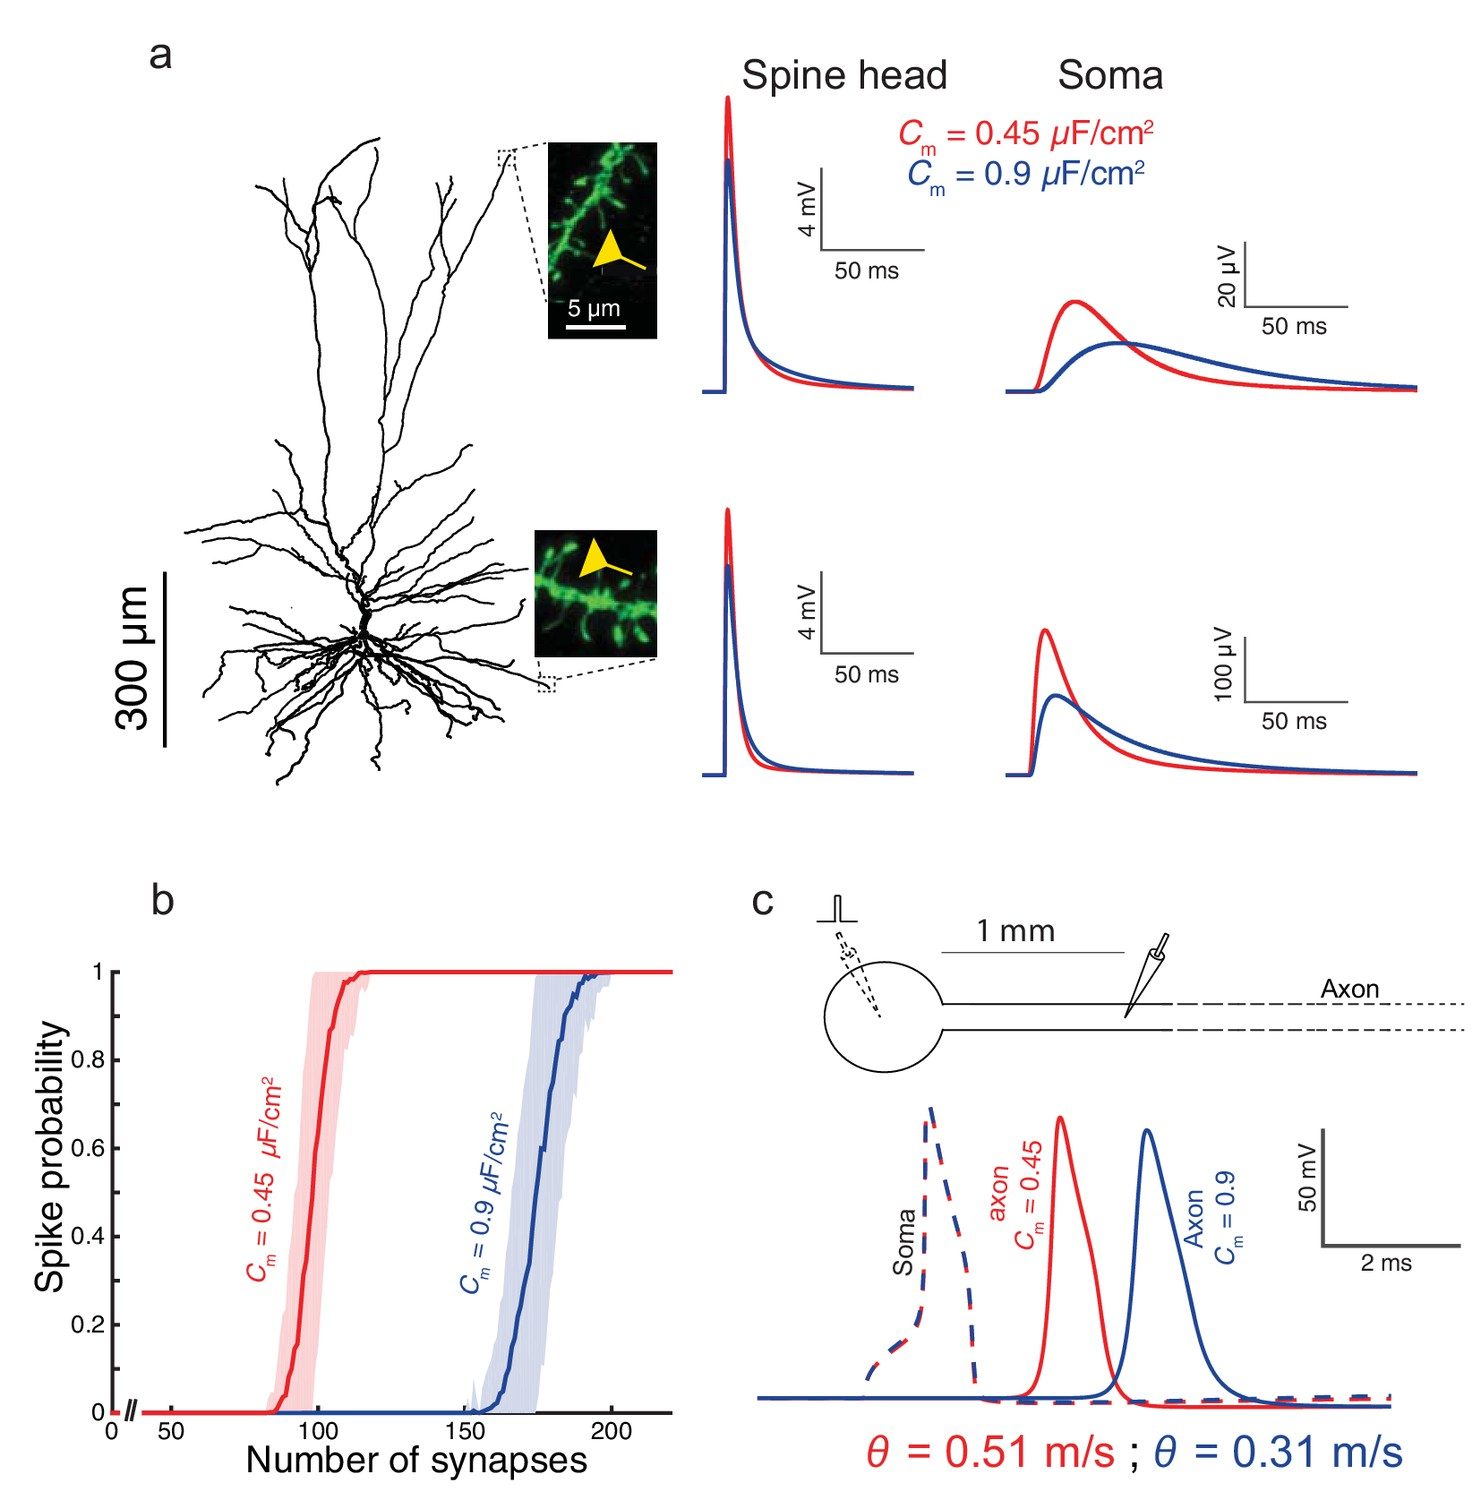 Unique Membrane Properties And Enhanced Signal Processing In Human Cell Diagram Parts Pictures Structure Functions Functional Implications Of The Low Cm Value L2 3 Cortical Neurons For